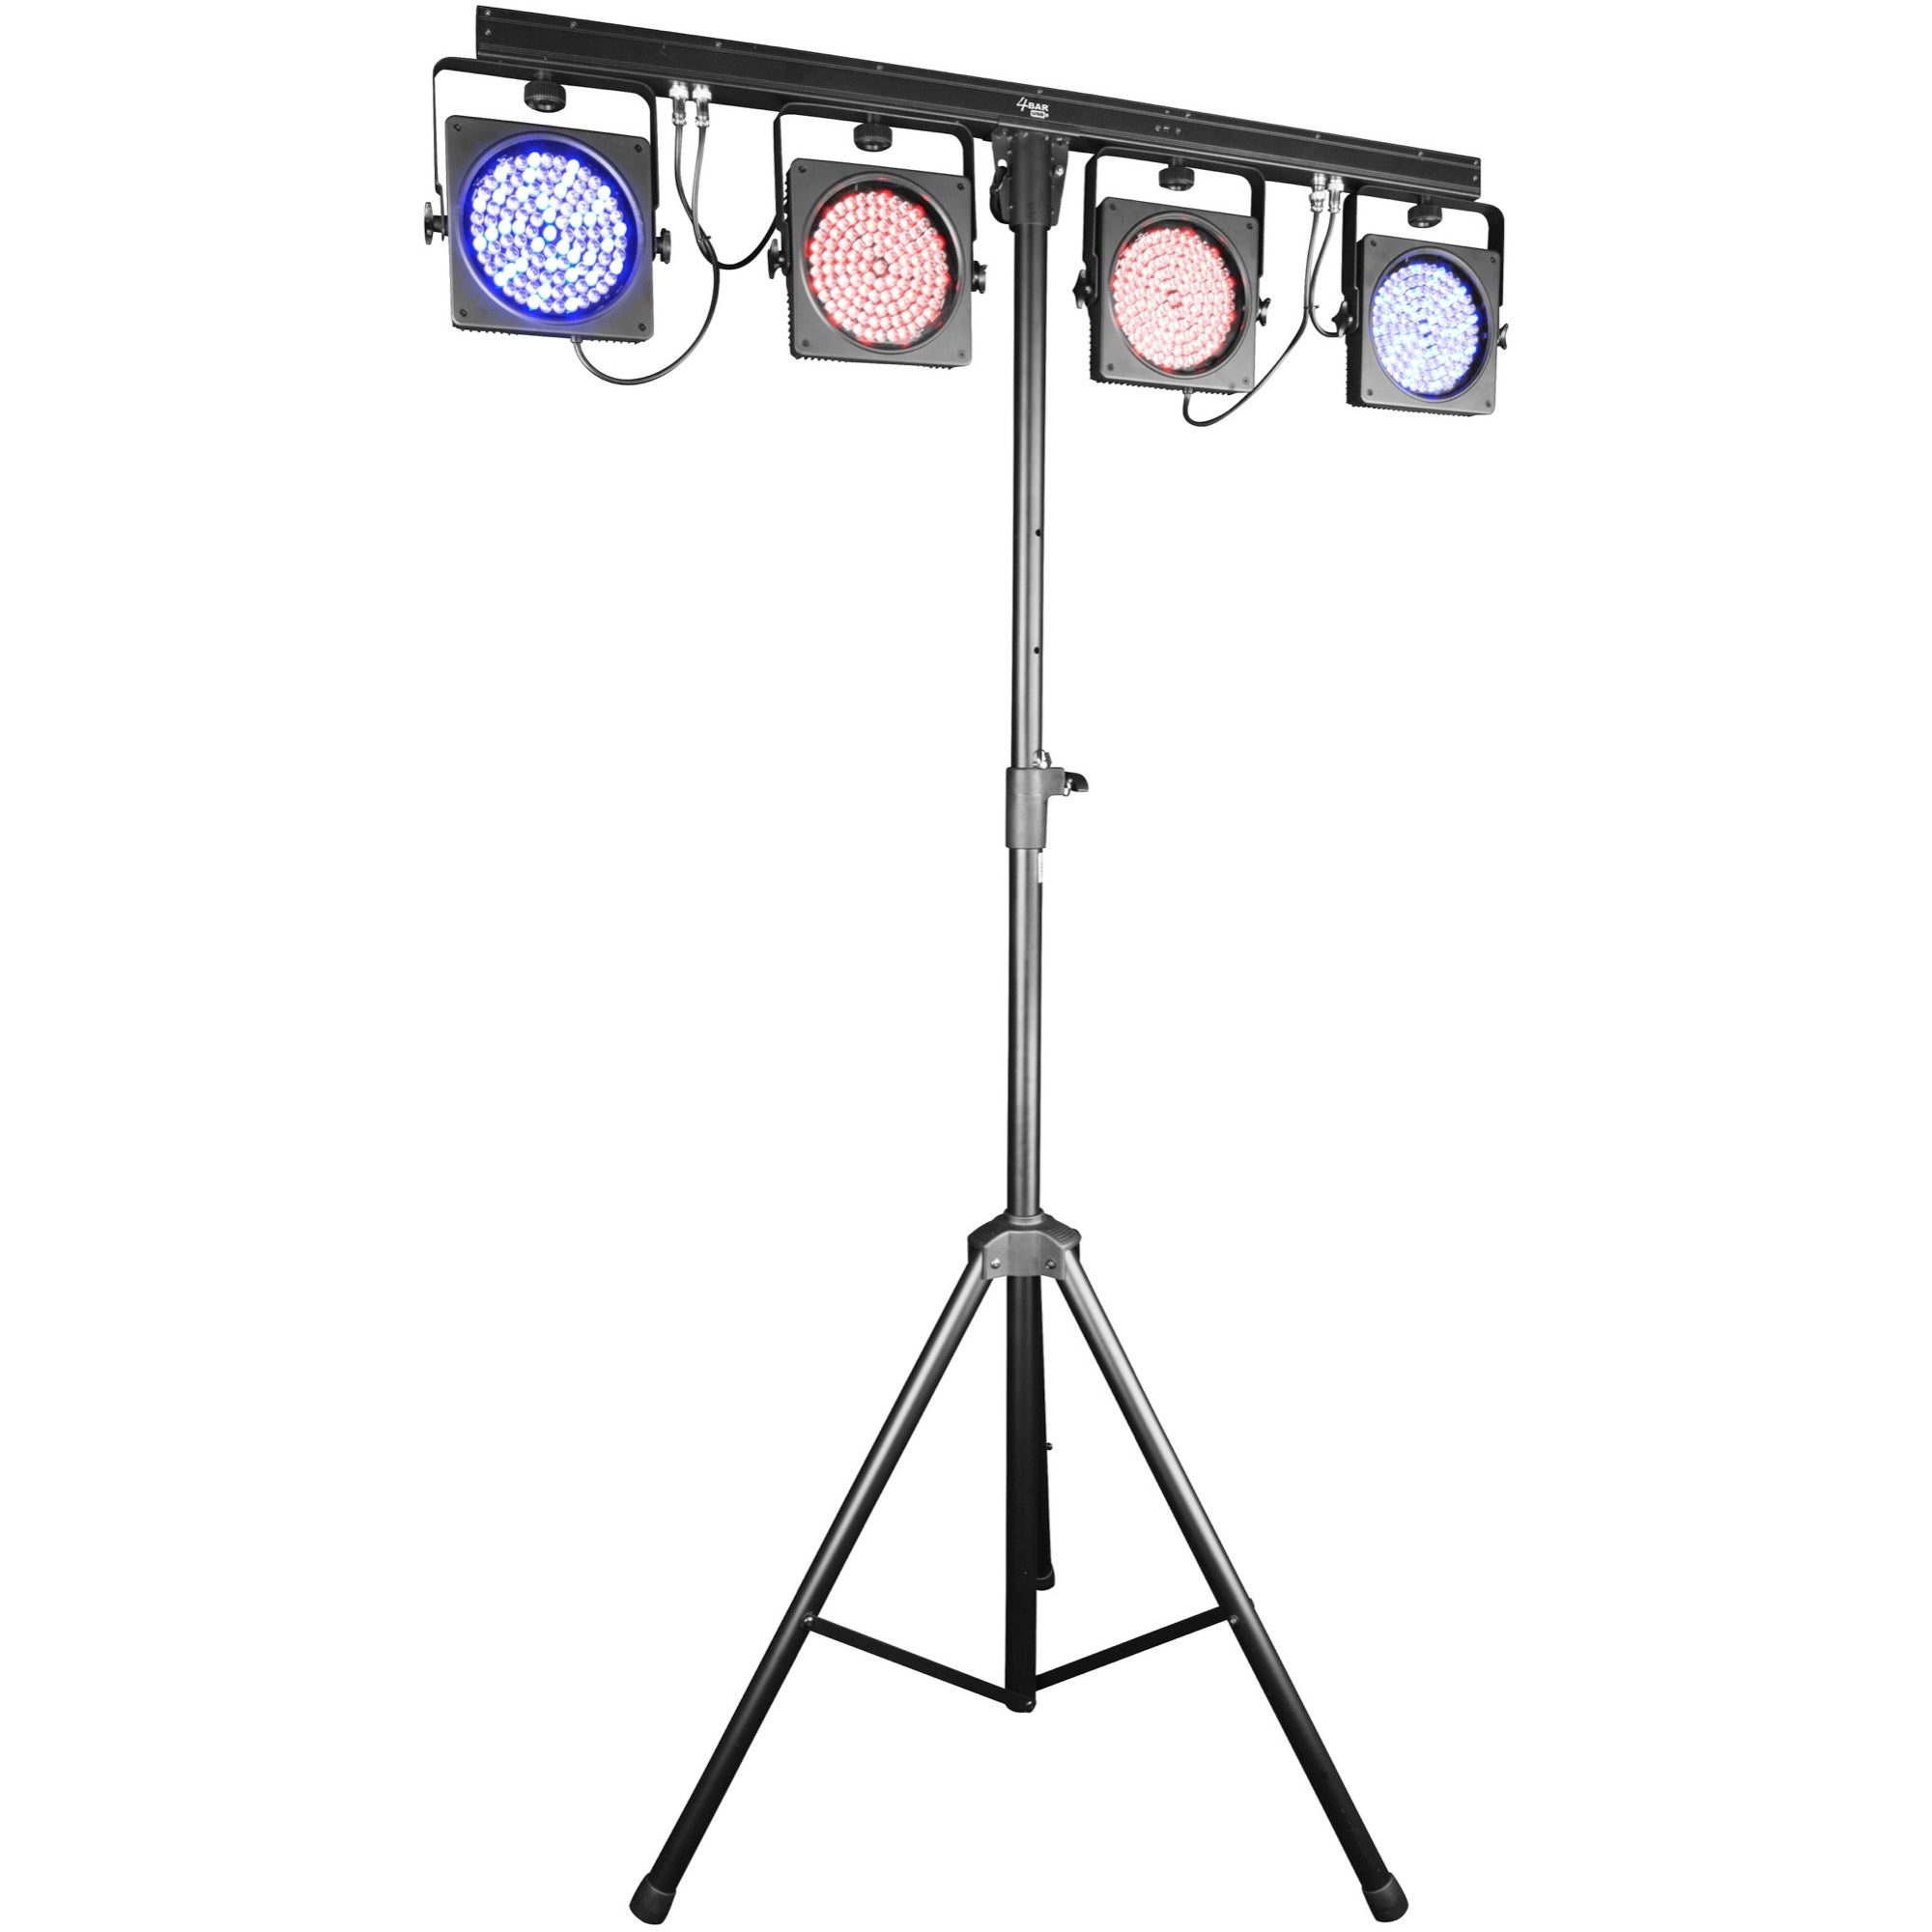 Chauvet DJ 4Bar USB Stage Lighting System